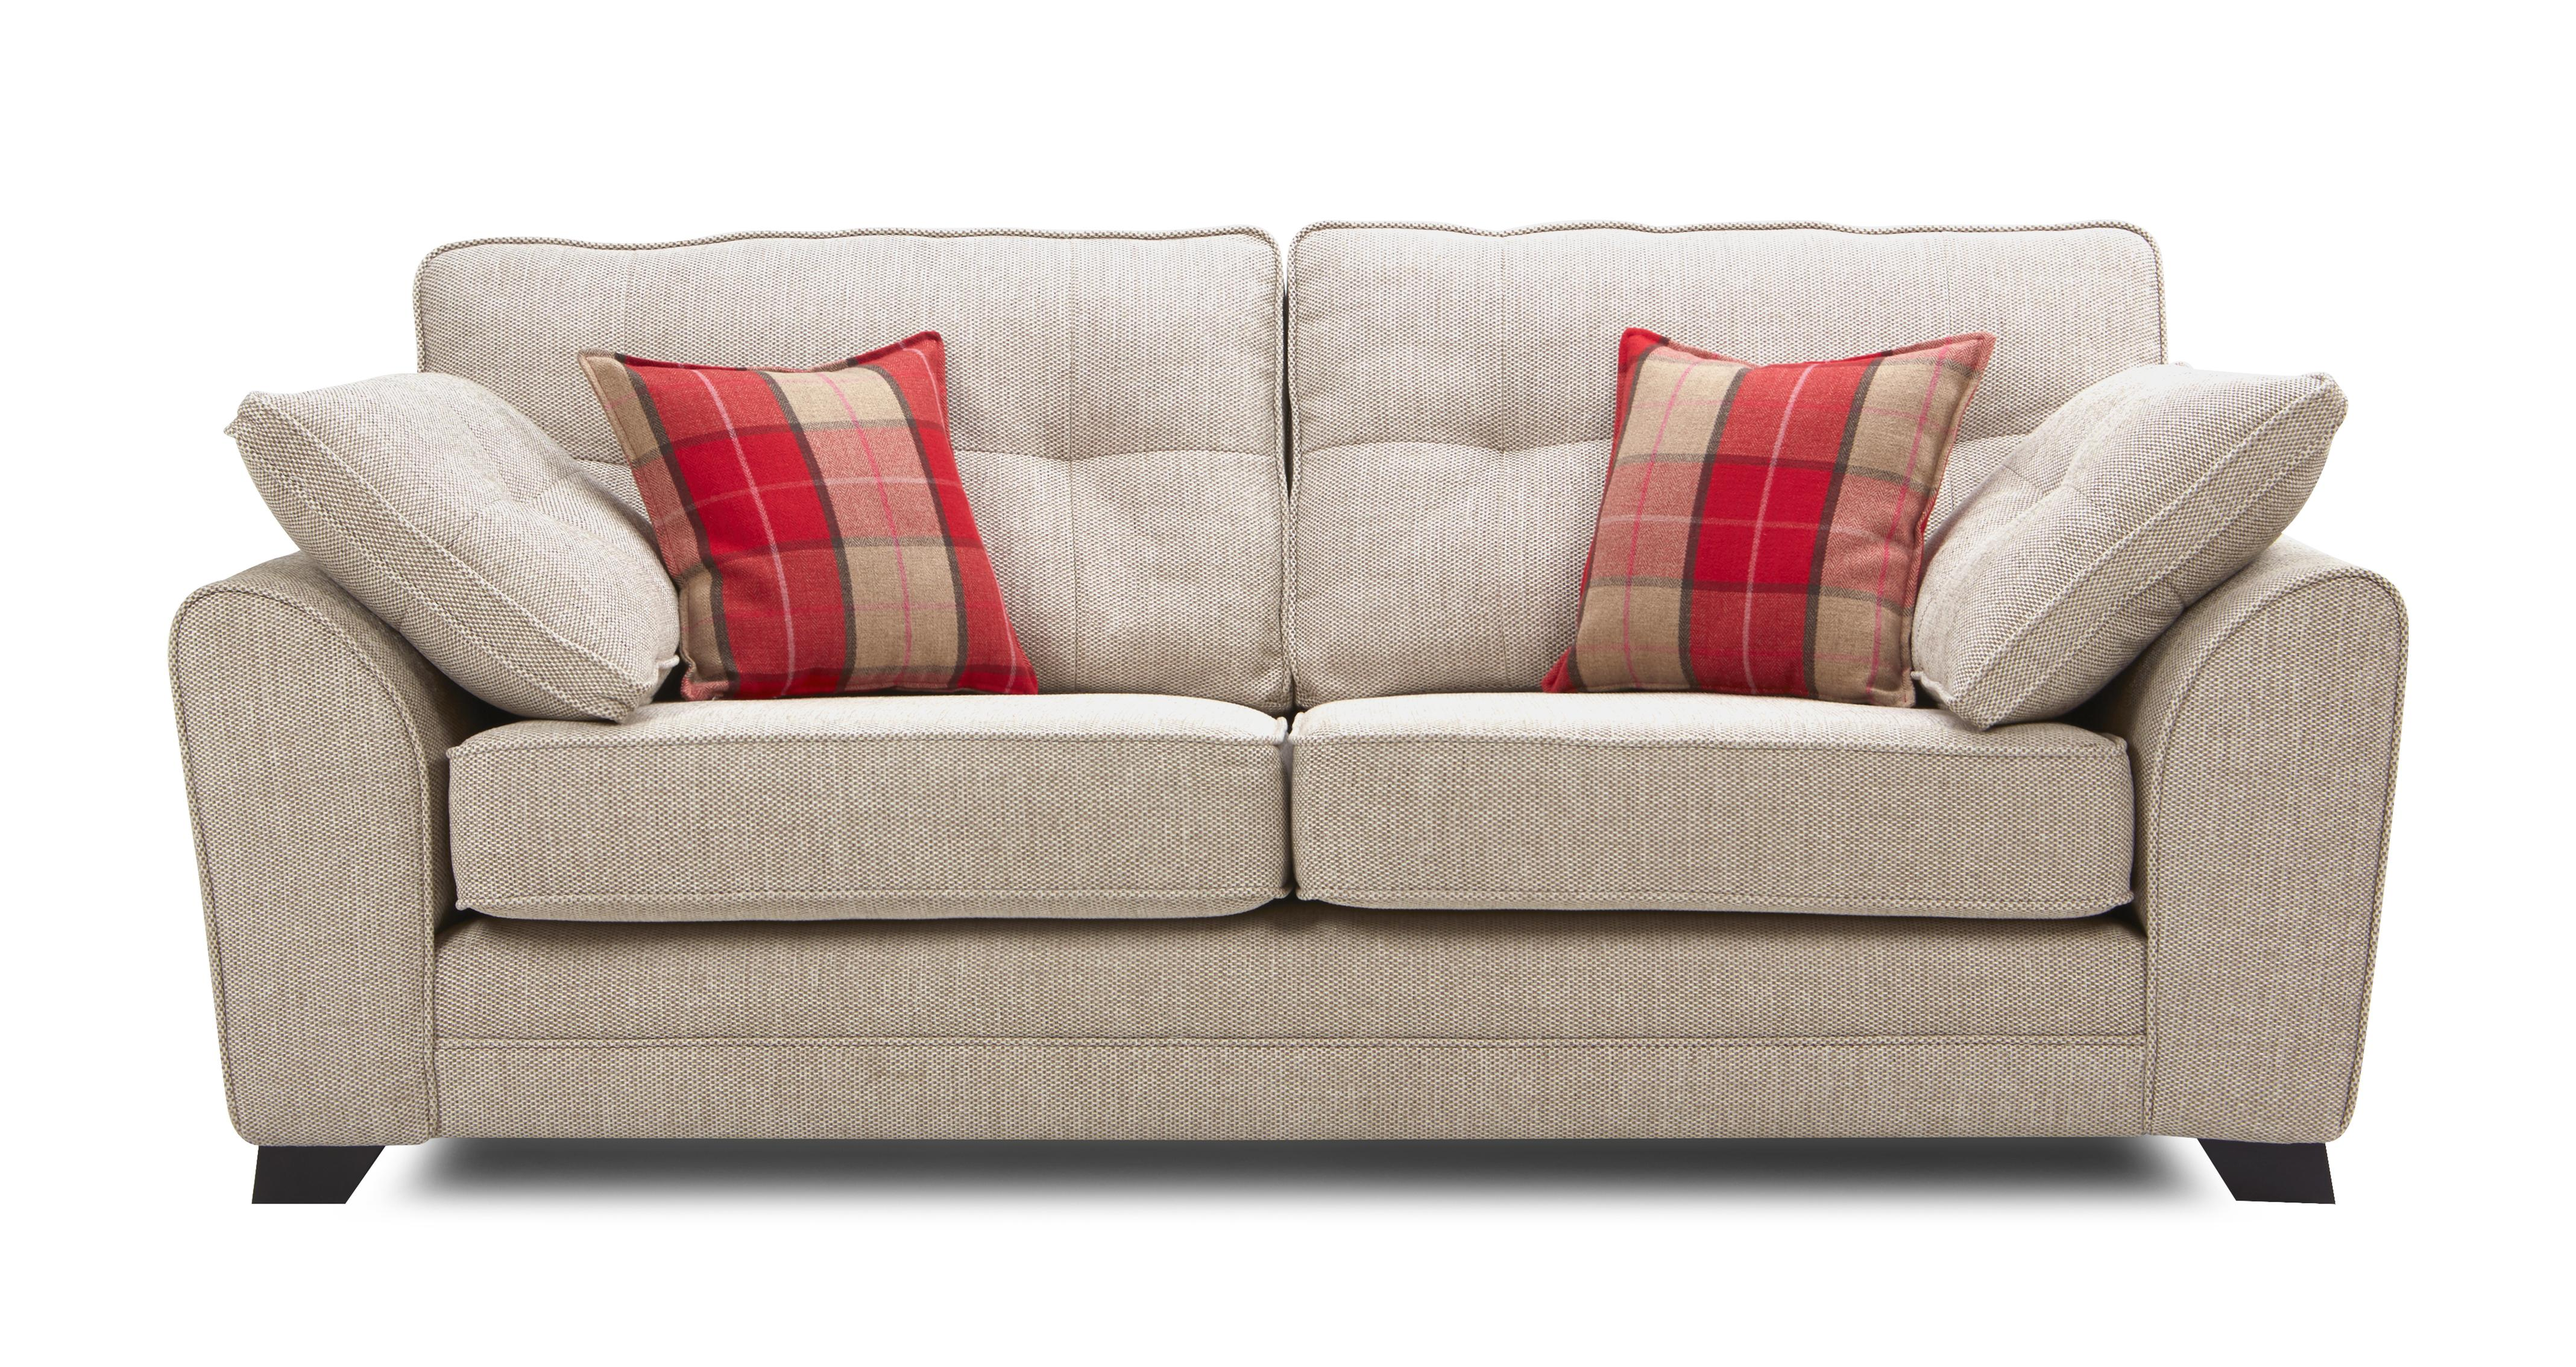 discontinued sofas uk recondition leather sofa dfs birmingham bank holiday opening times lifehacked1st